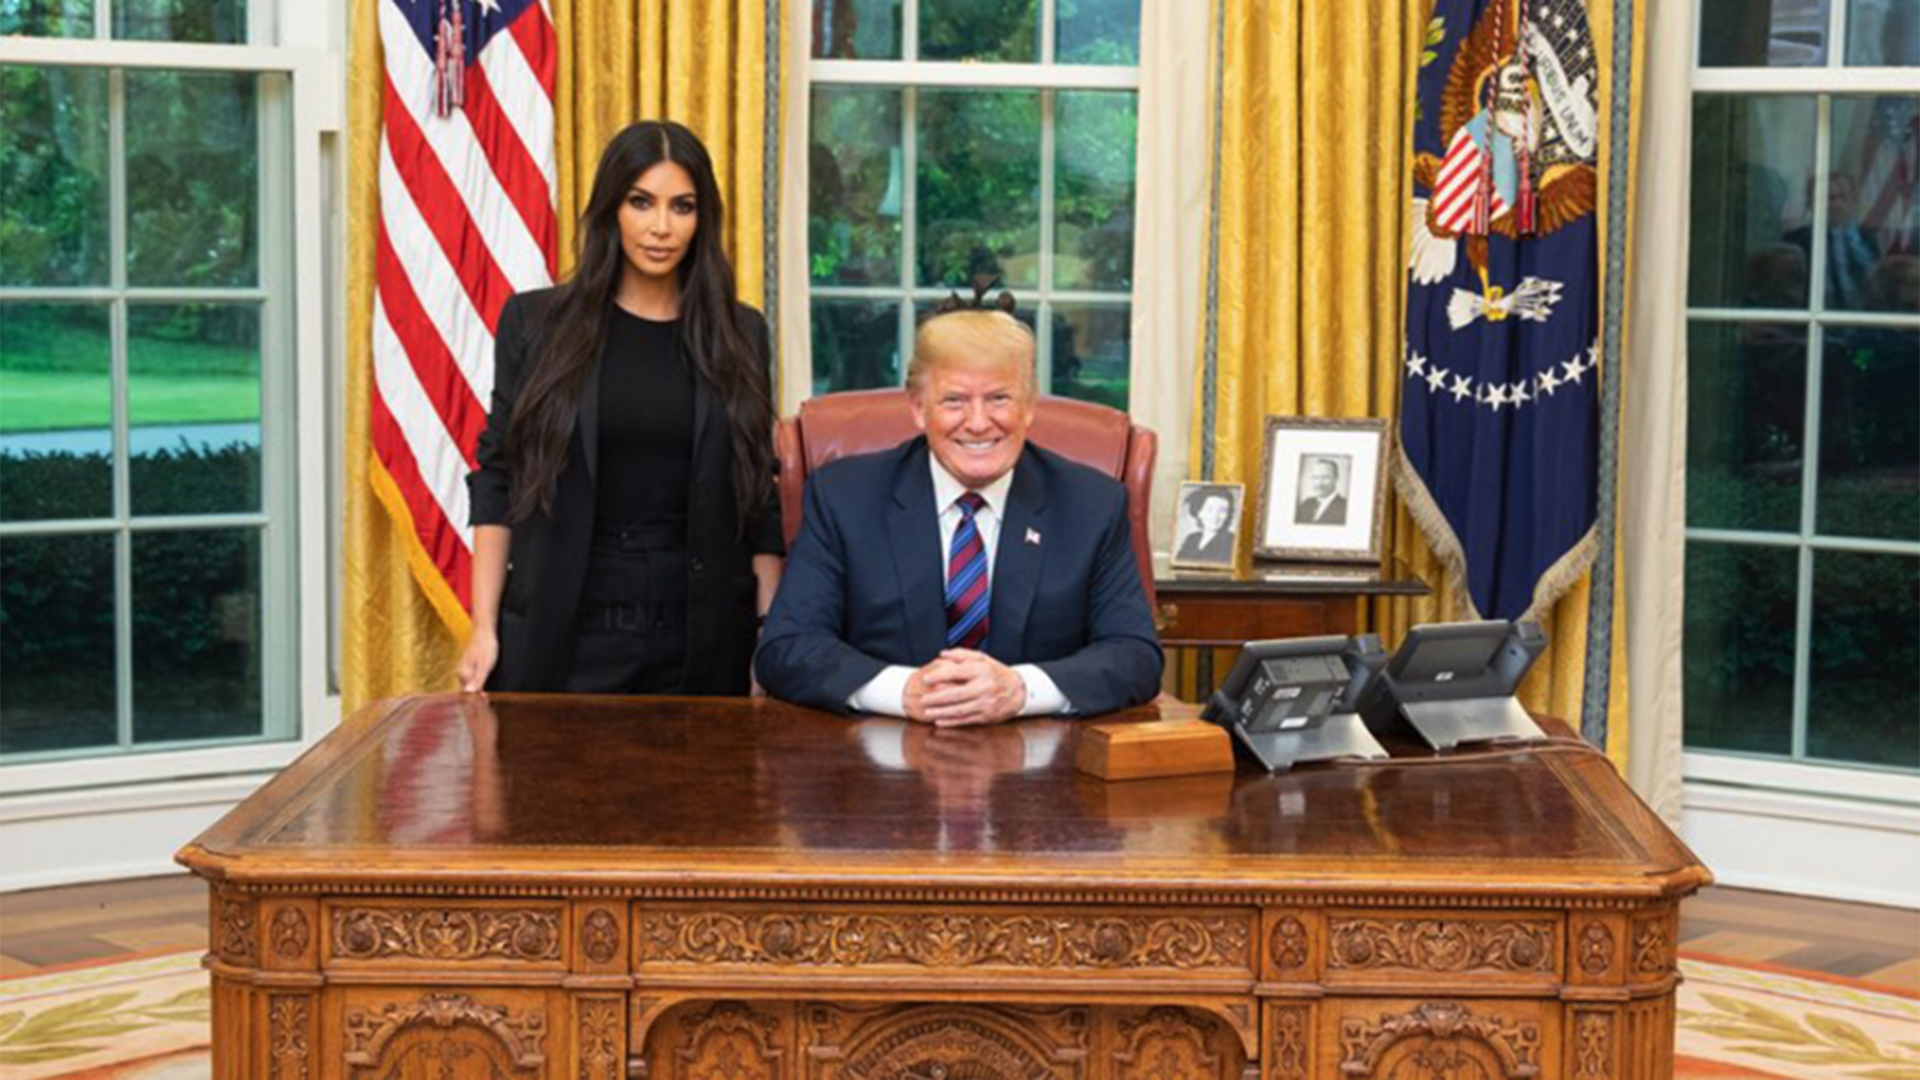 The image shows Kim Kardashian West's first lobbying meeting with Presiden Trump.